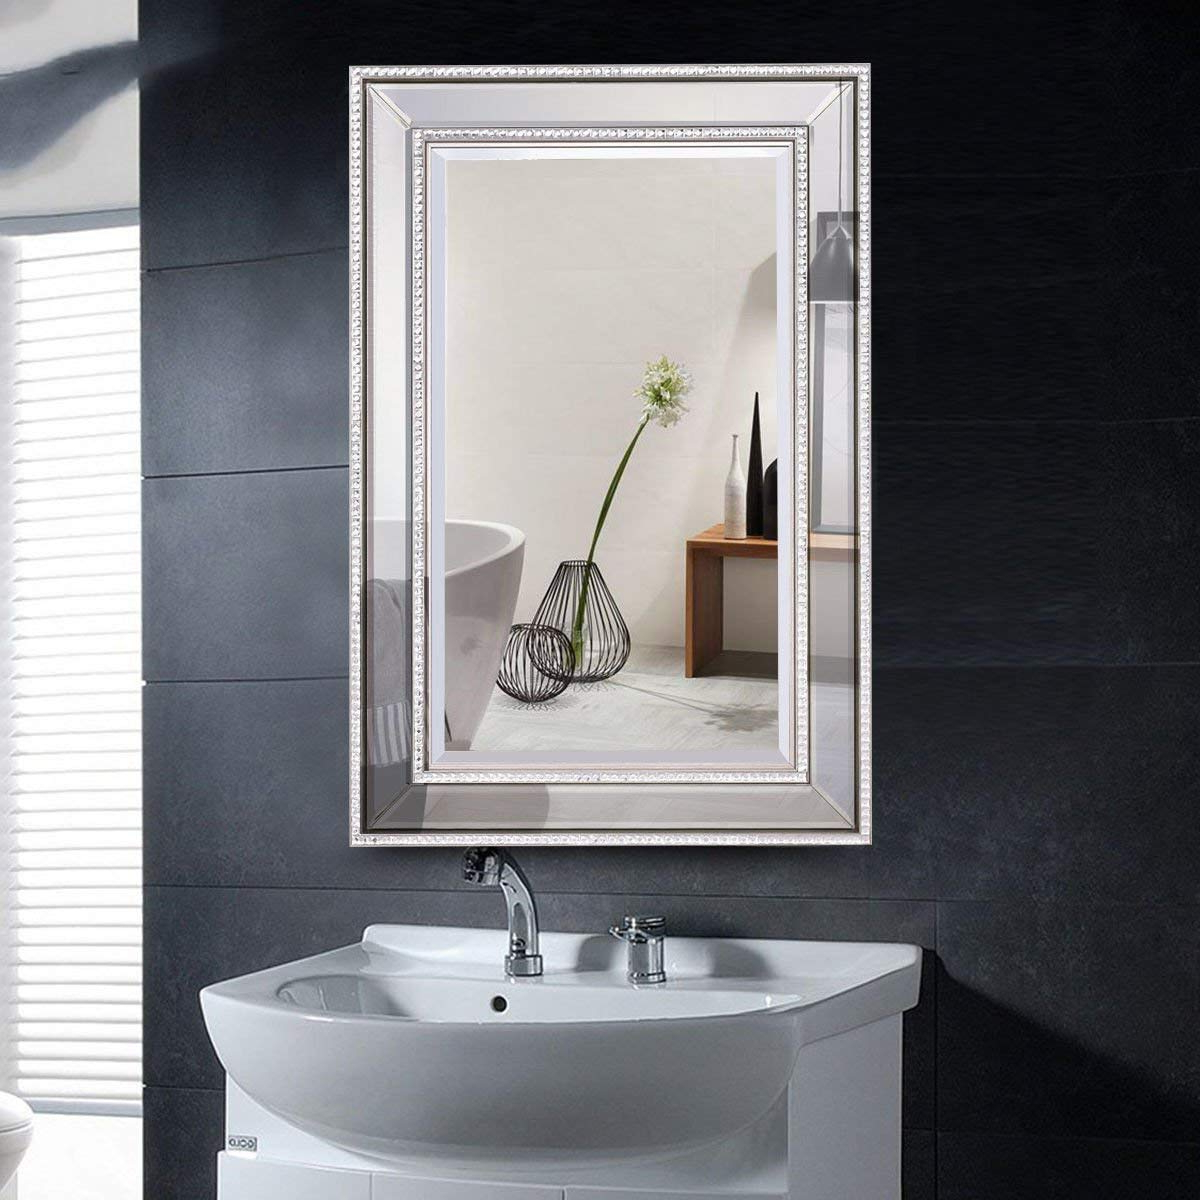 "Current Tangkula 24"" X 36"" Wall Mirror Wall Mounted Wood Frame Rectangular Bathroom Vanity Mirror Pertaining To 24 X 36 Wall Mirrors (View 2 of 20)"